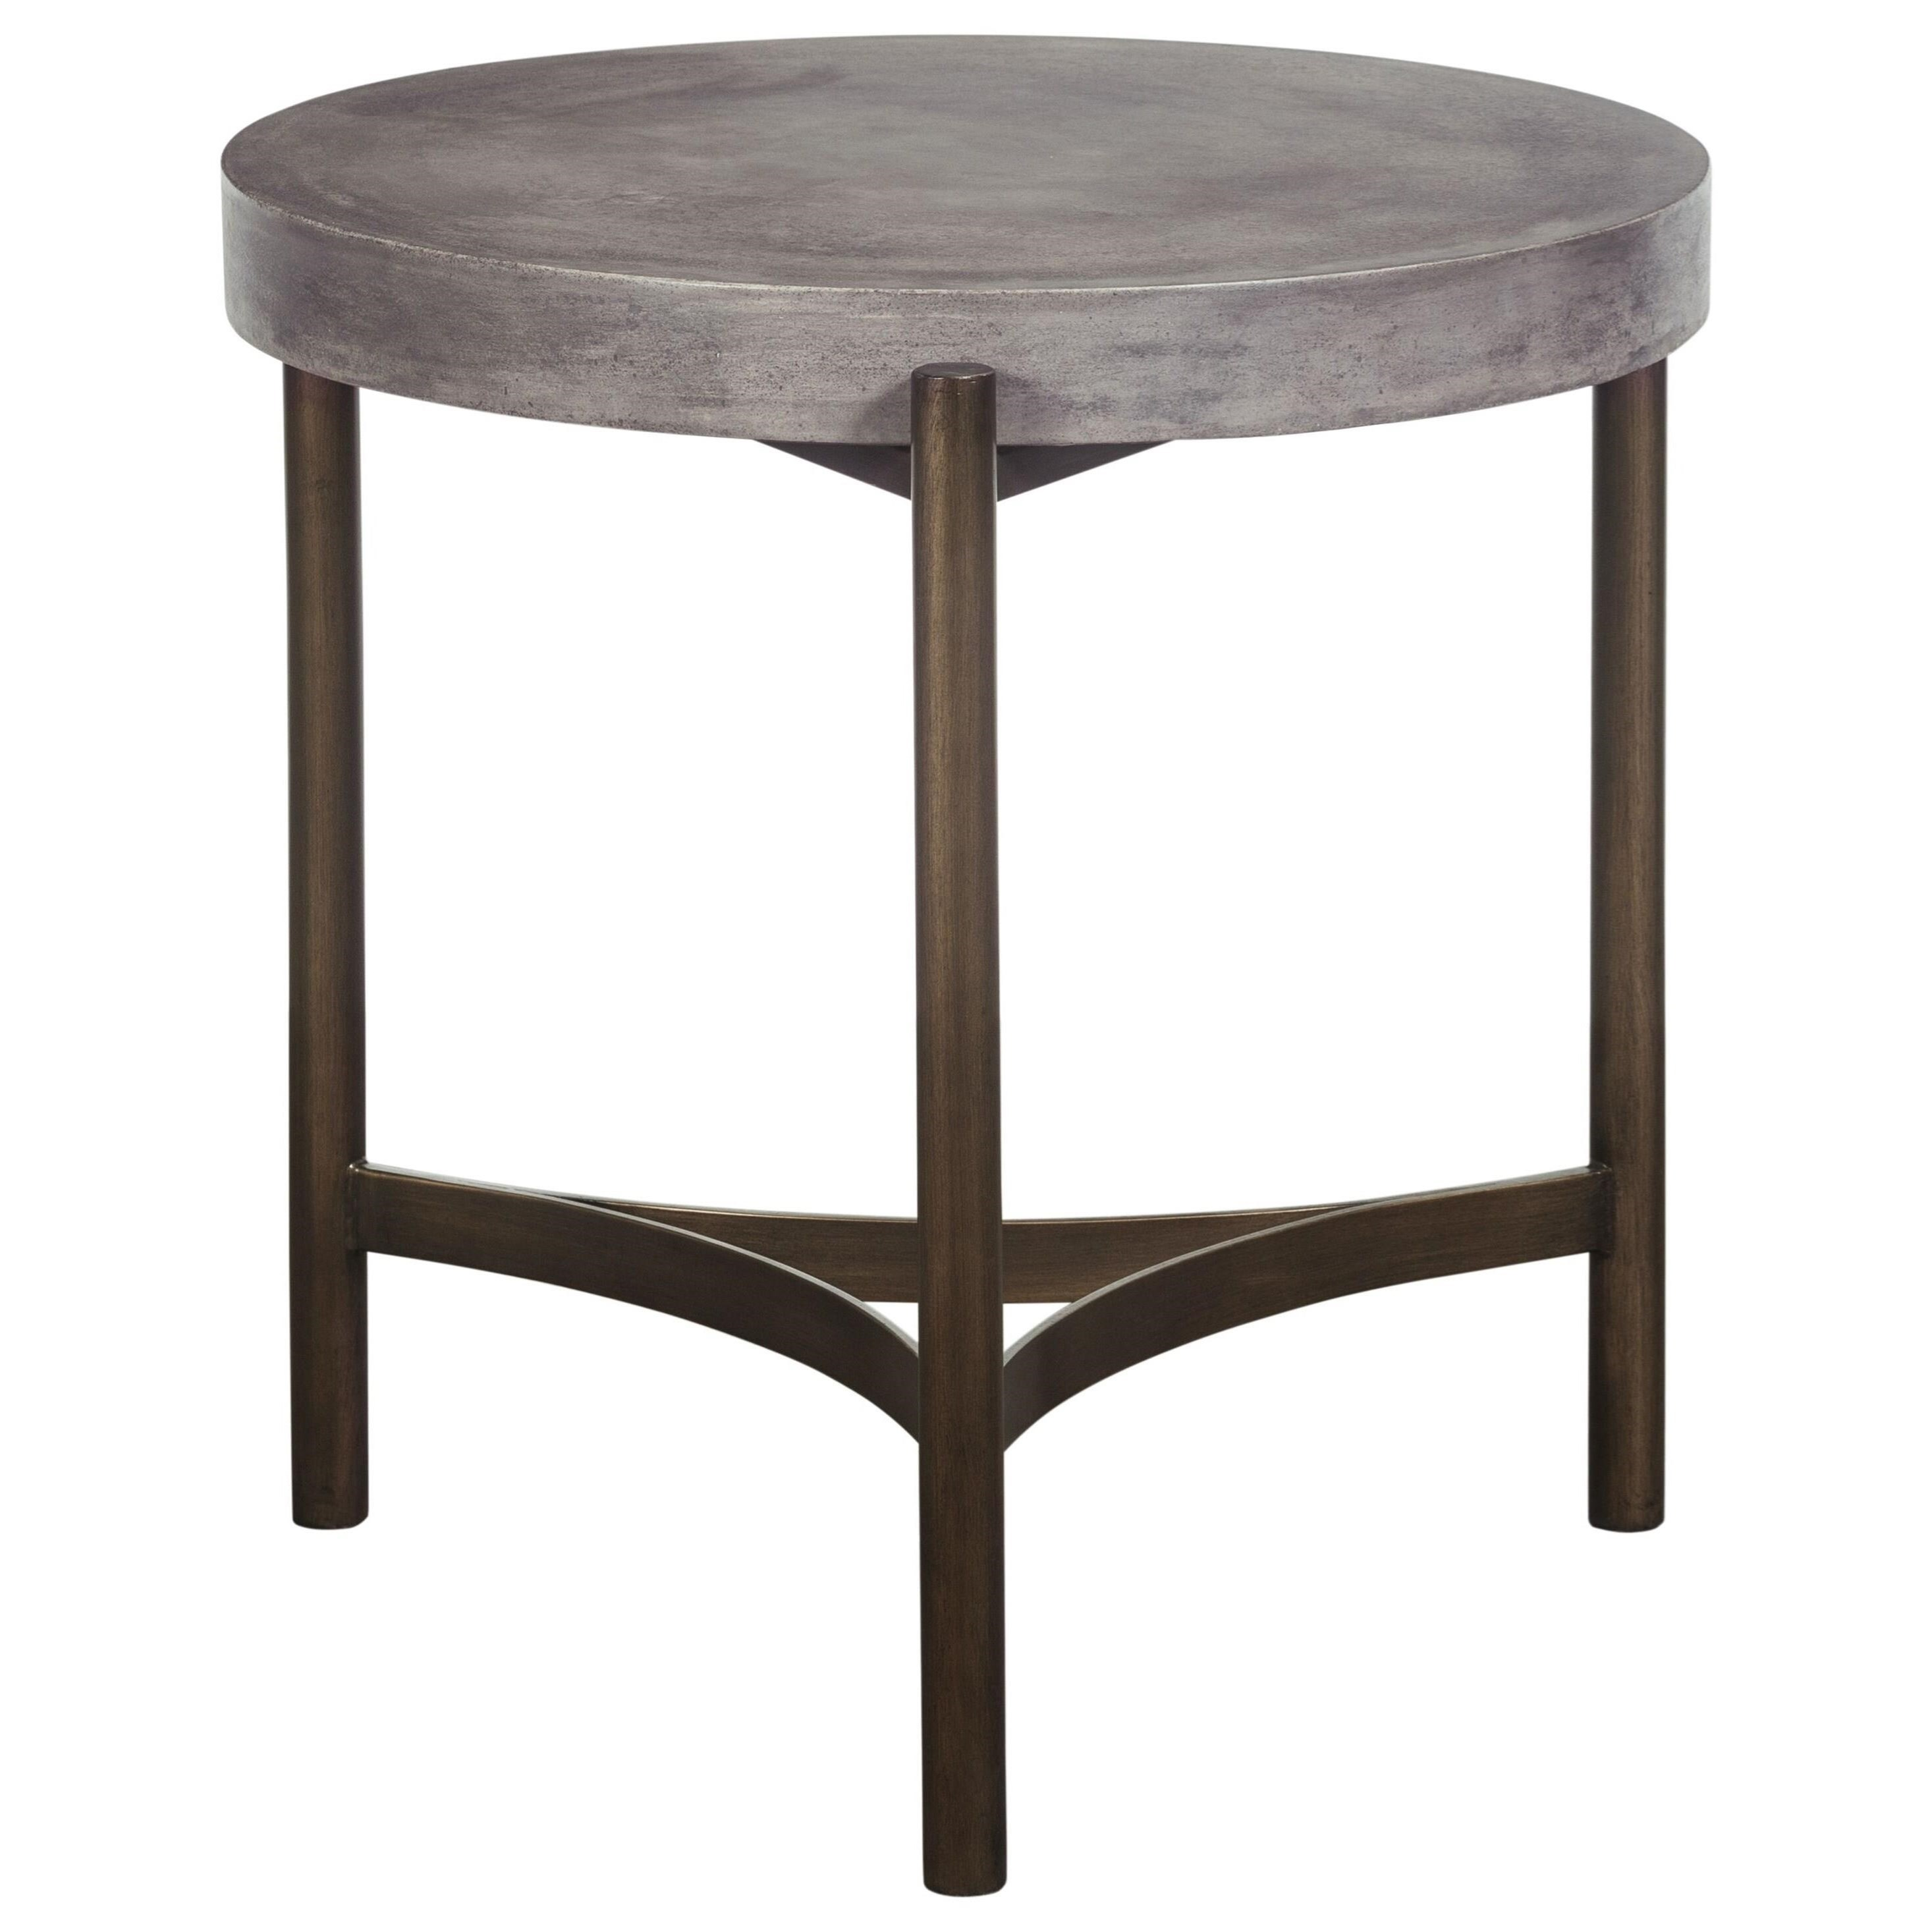 Lyon Round End Table by Modus International at Del Sol Furniture